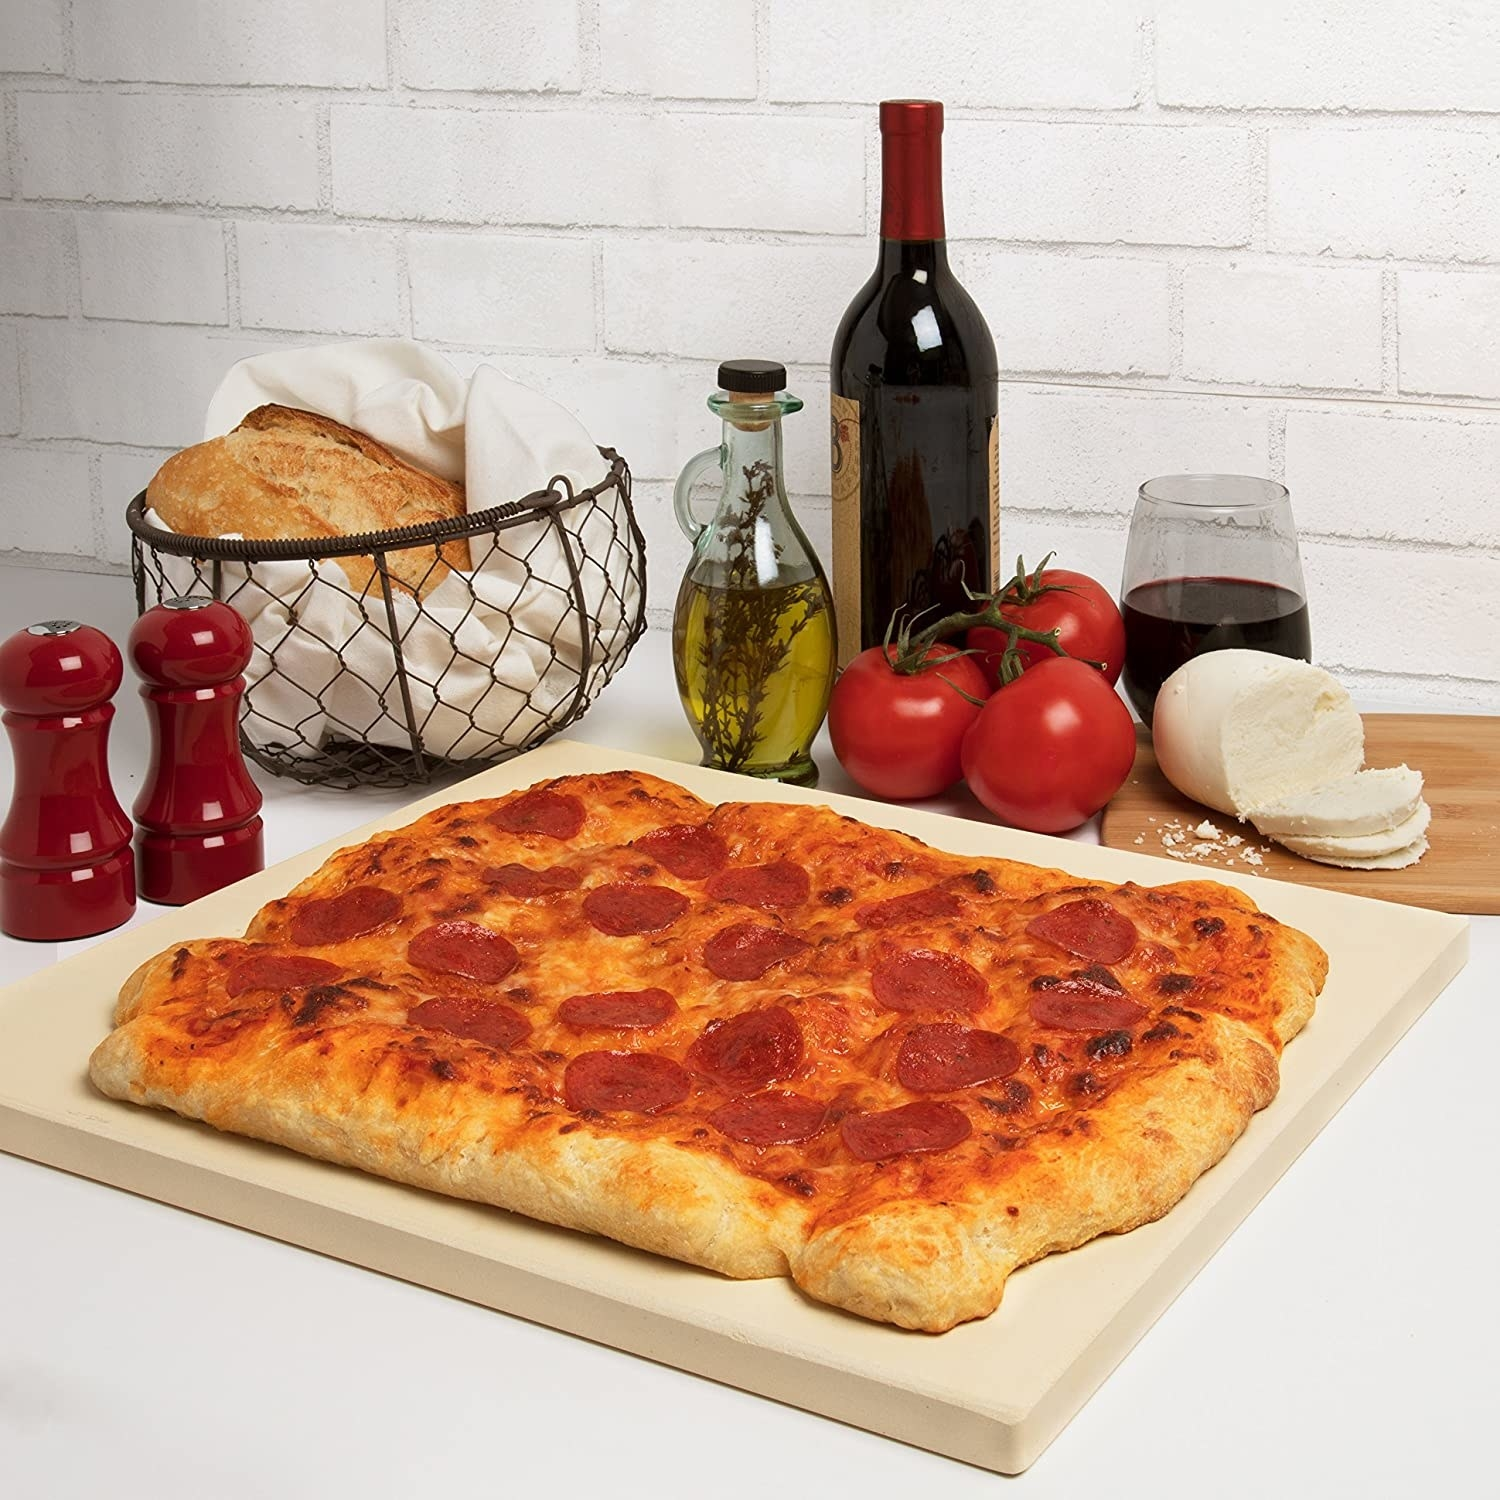 Large rectangular pizza on thick pizza stone